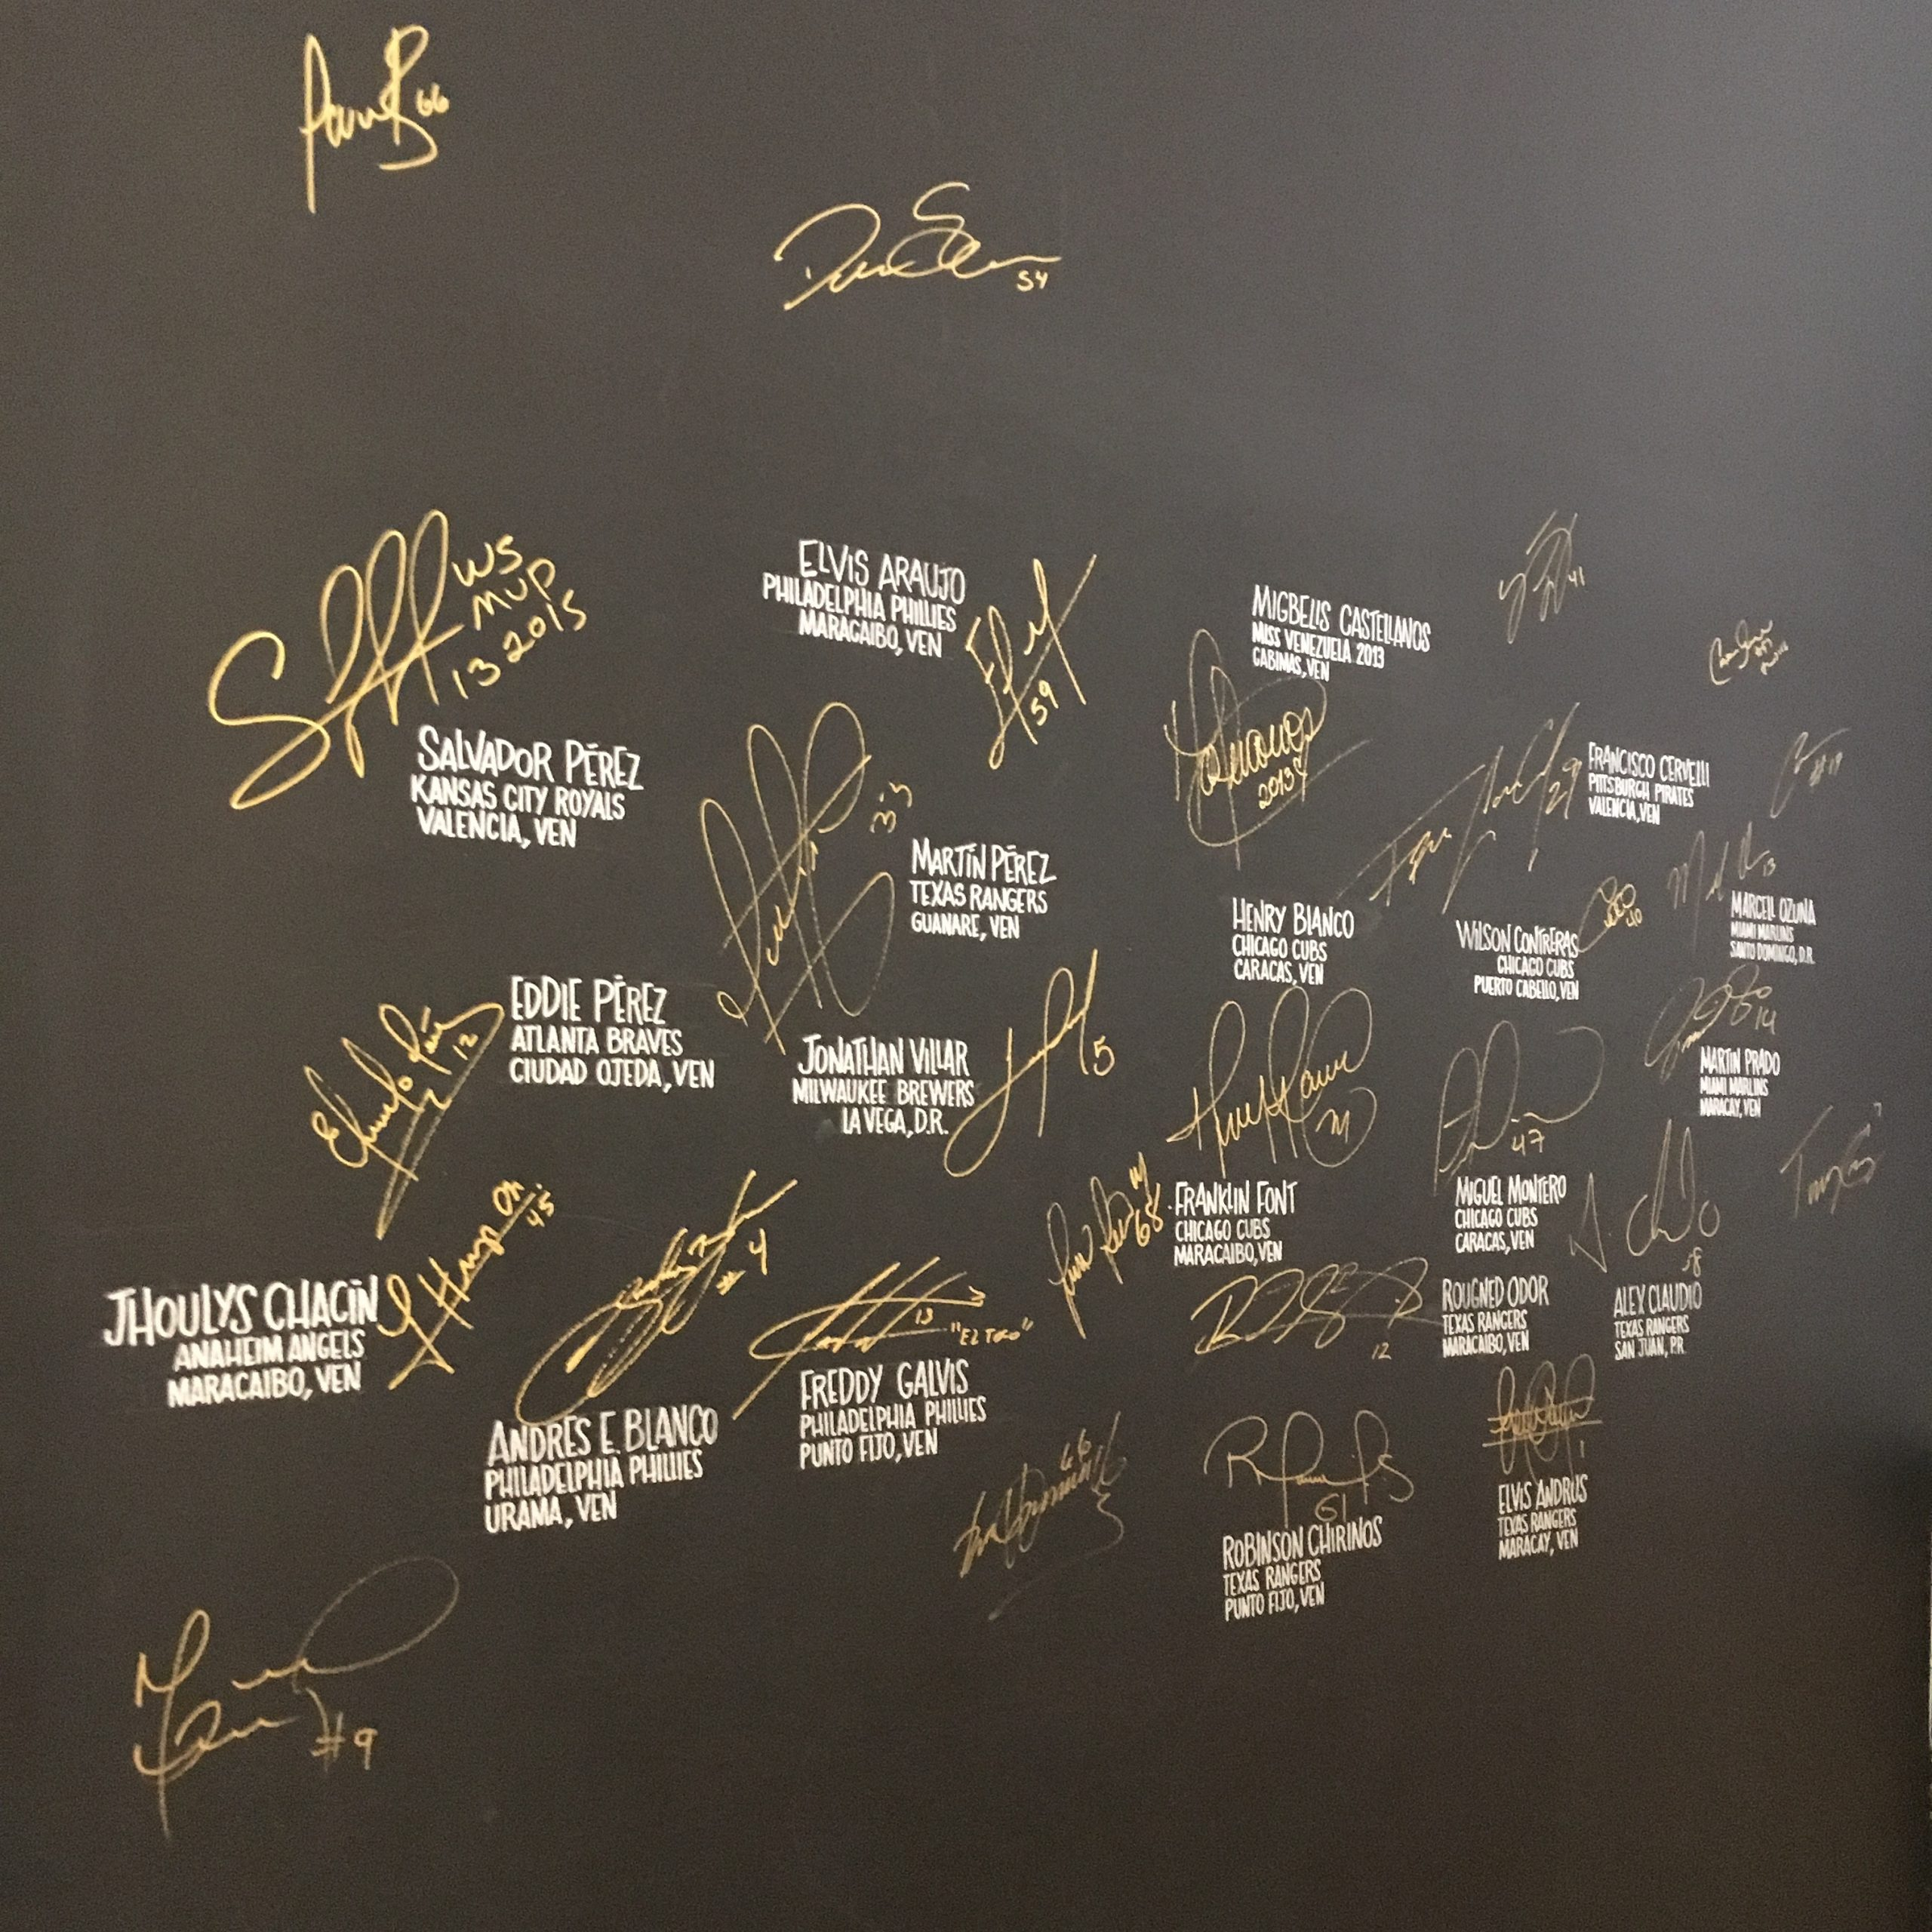 The wall of fame at Bienmesabe